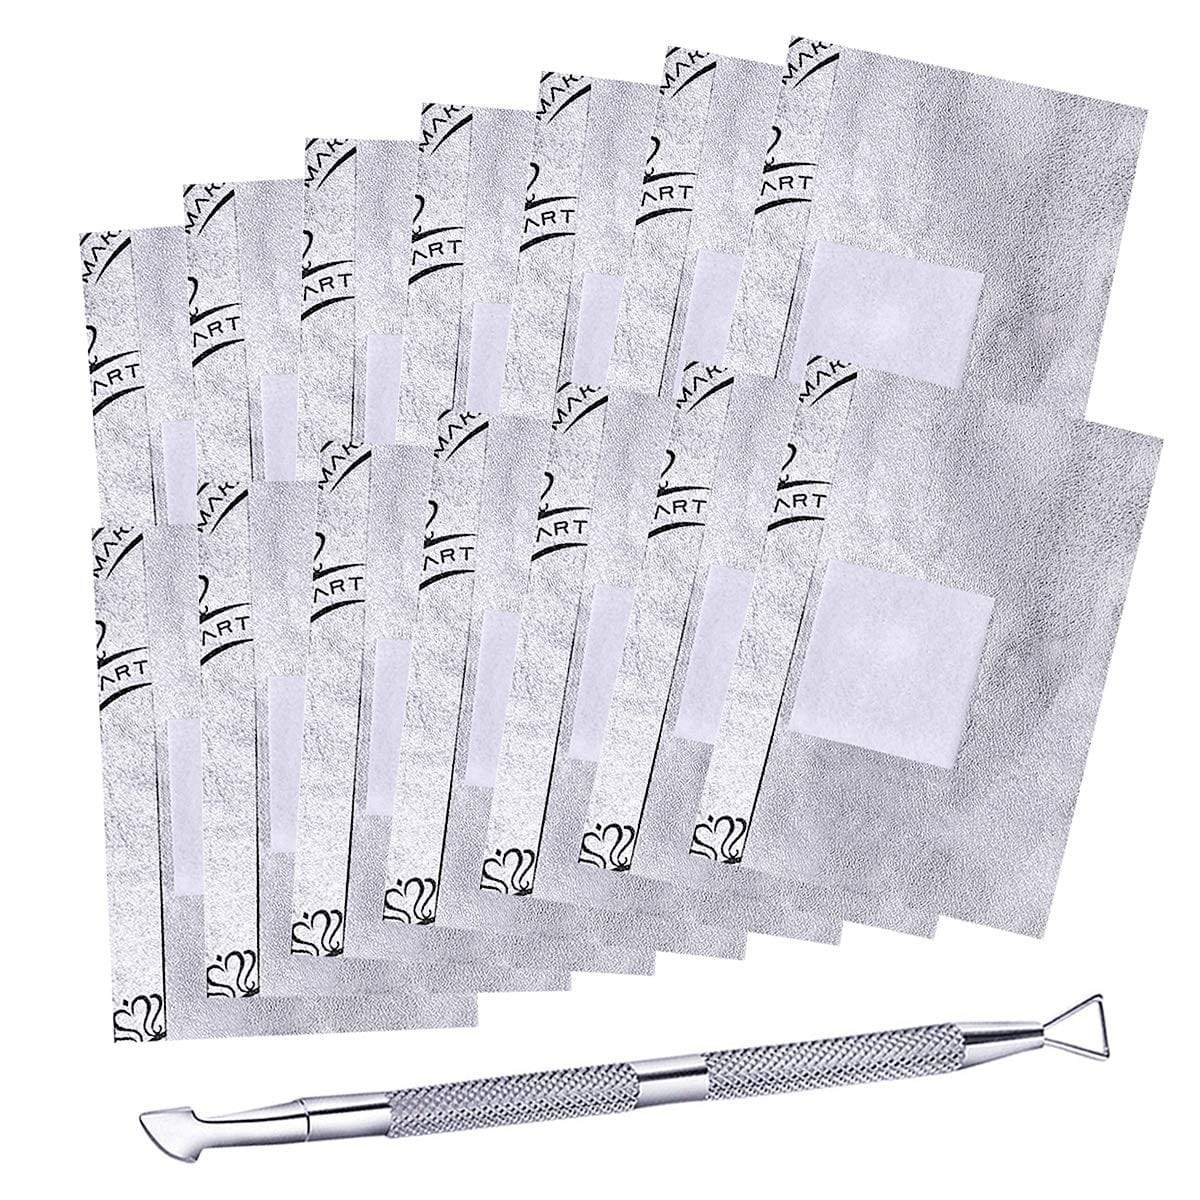 200 Pieces Soack Off Gel Remover Foil Wraps and Cuticle Pusher Set - Makartt